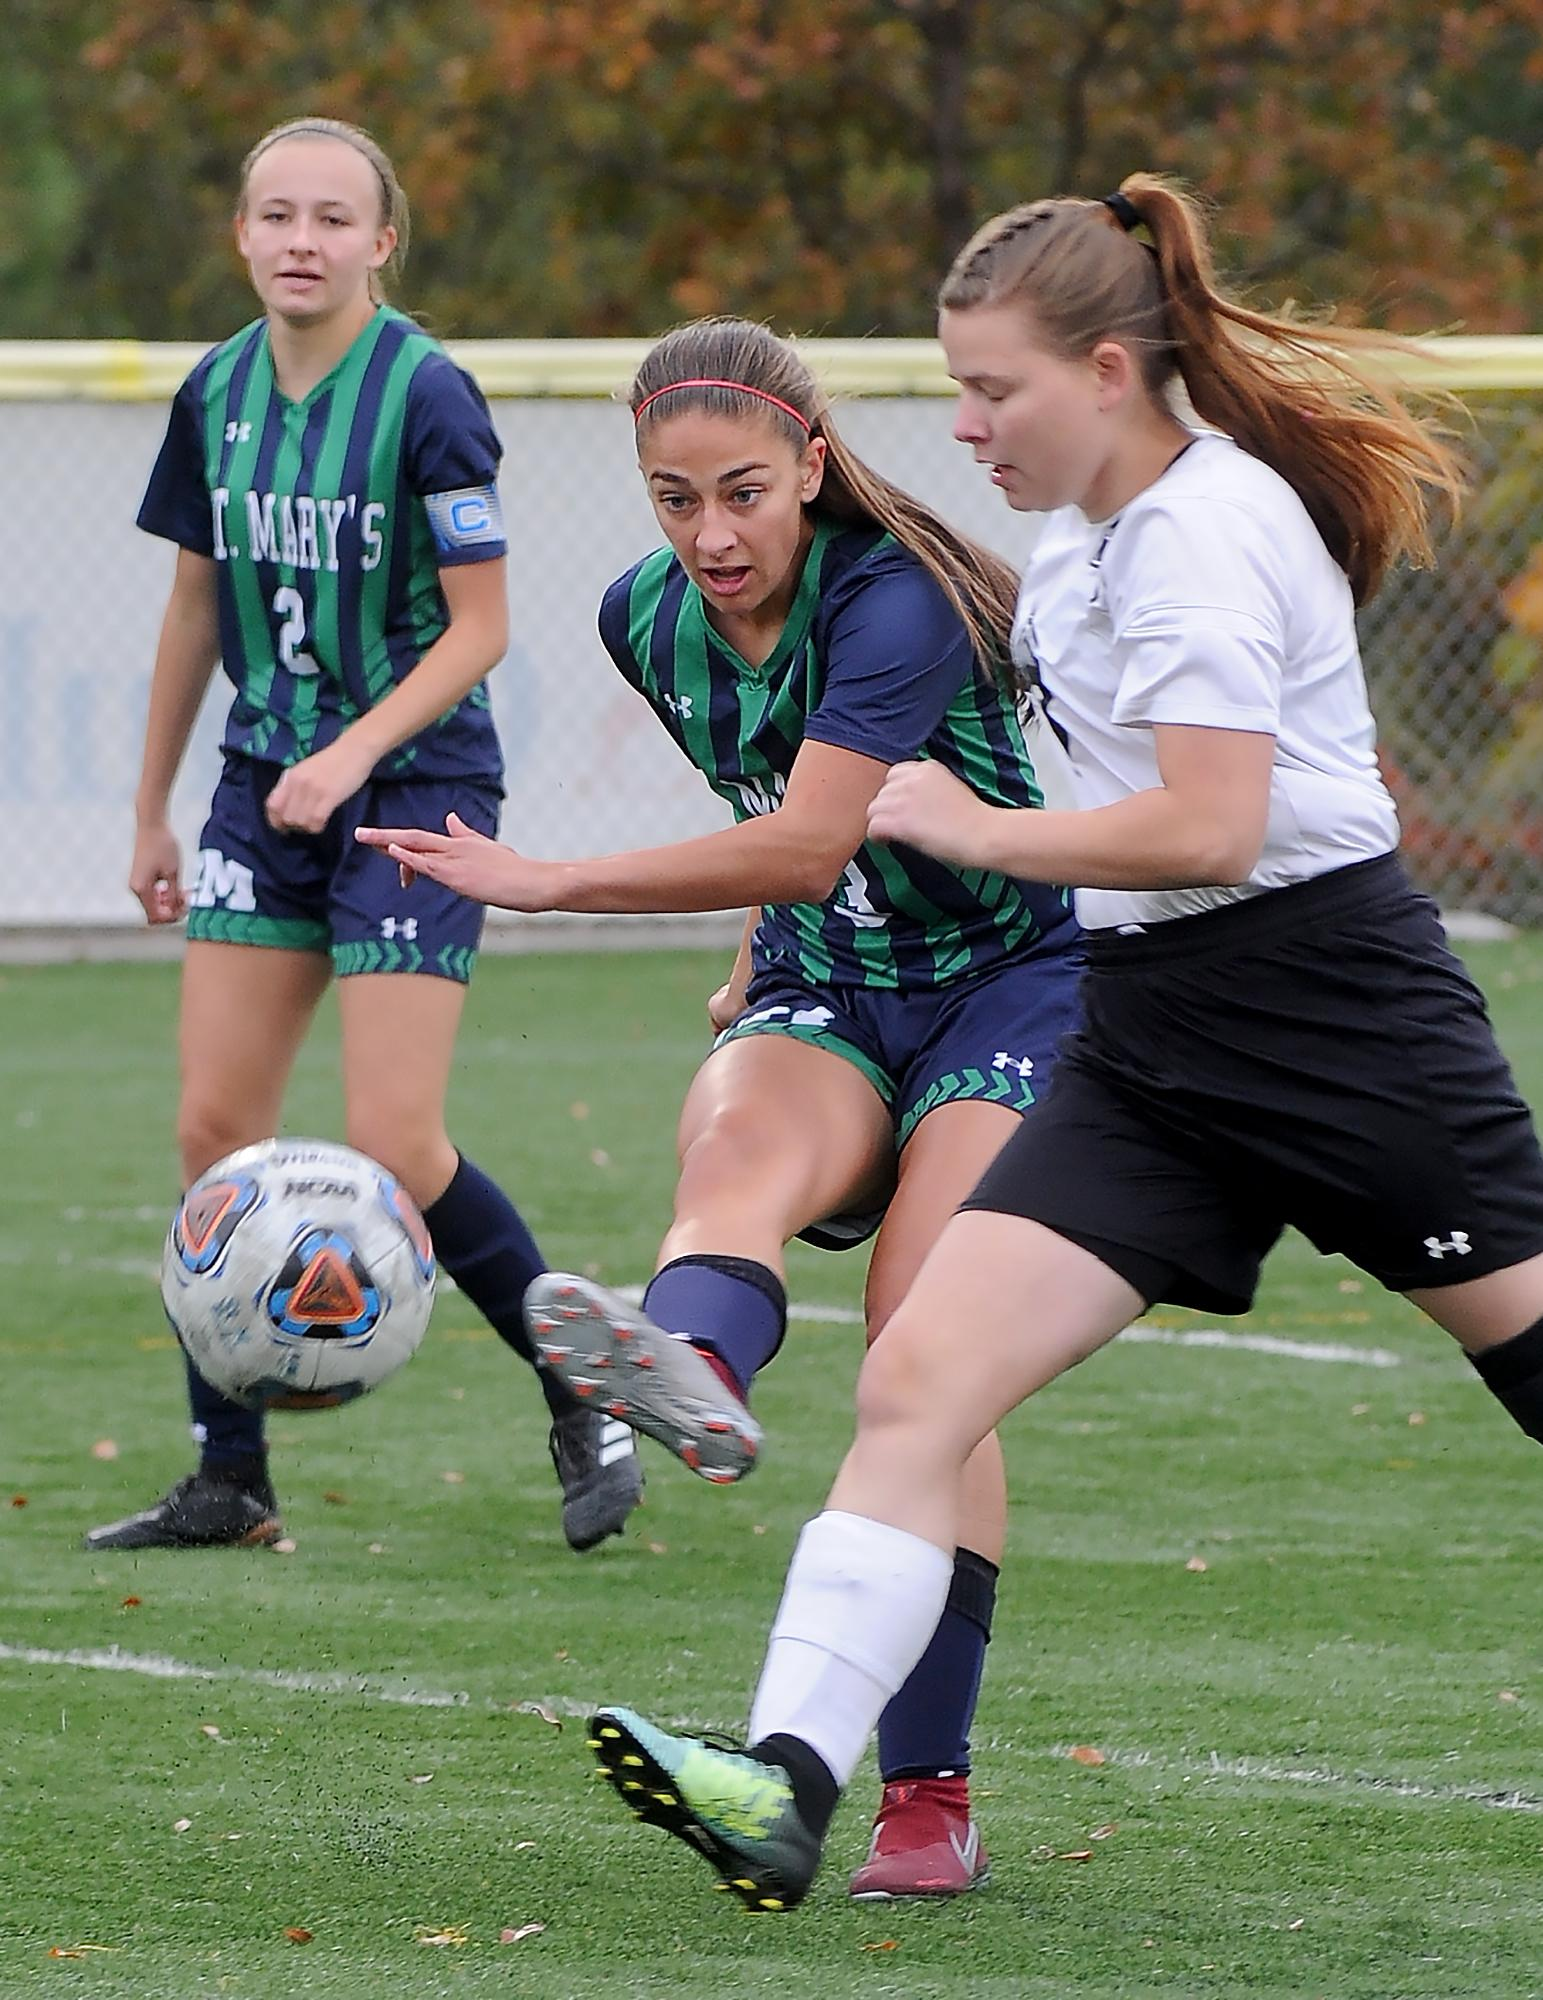 Maddie Wheelock, (3). scores a goal in the first half against Trojan defender Chayanne Van Allen, (4), as St. Mary's forward Meghan Michels, (2), looks on. Photo by Denise Baratta